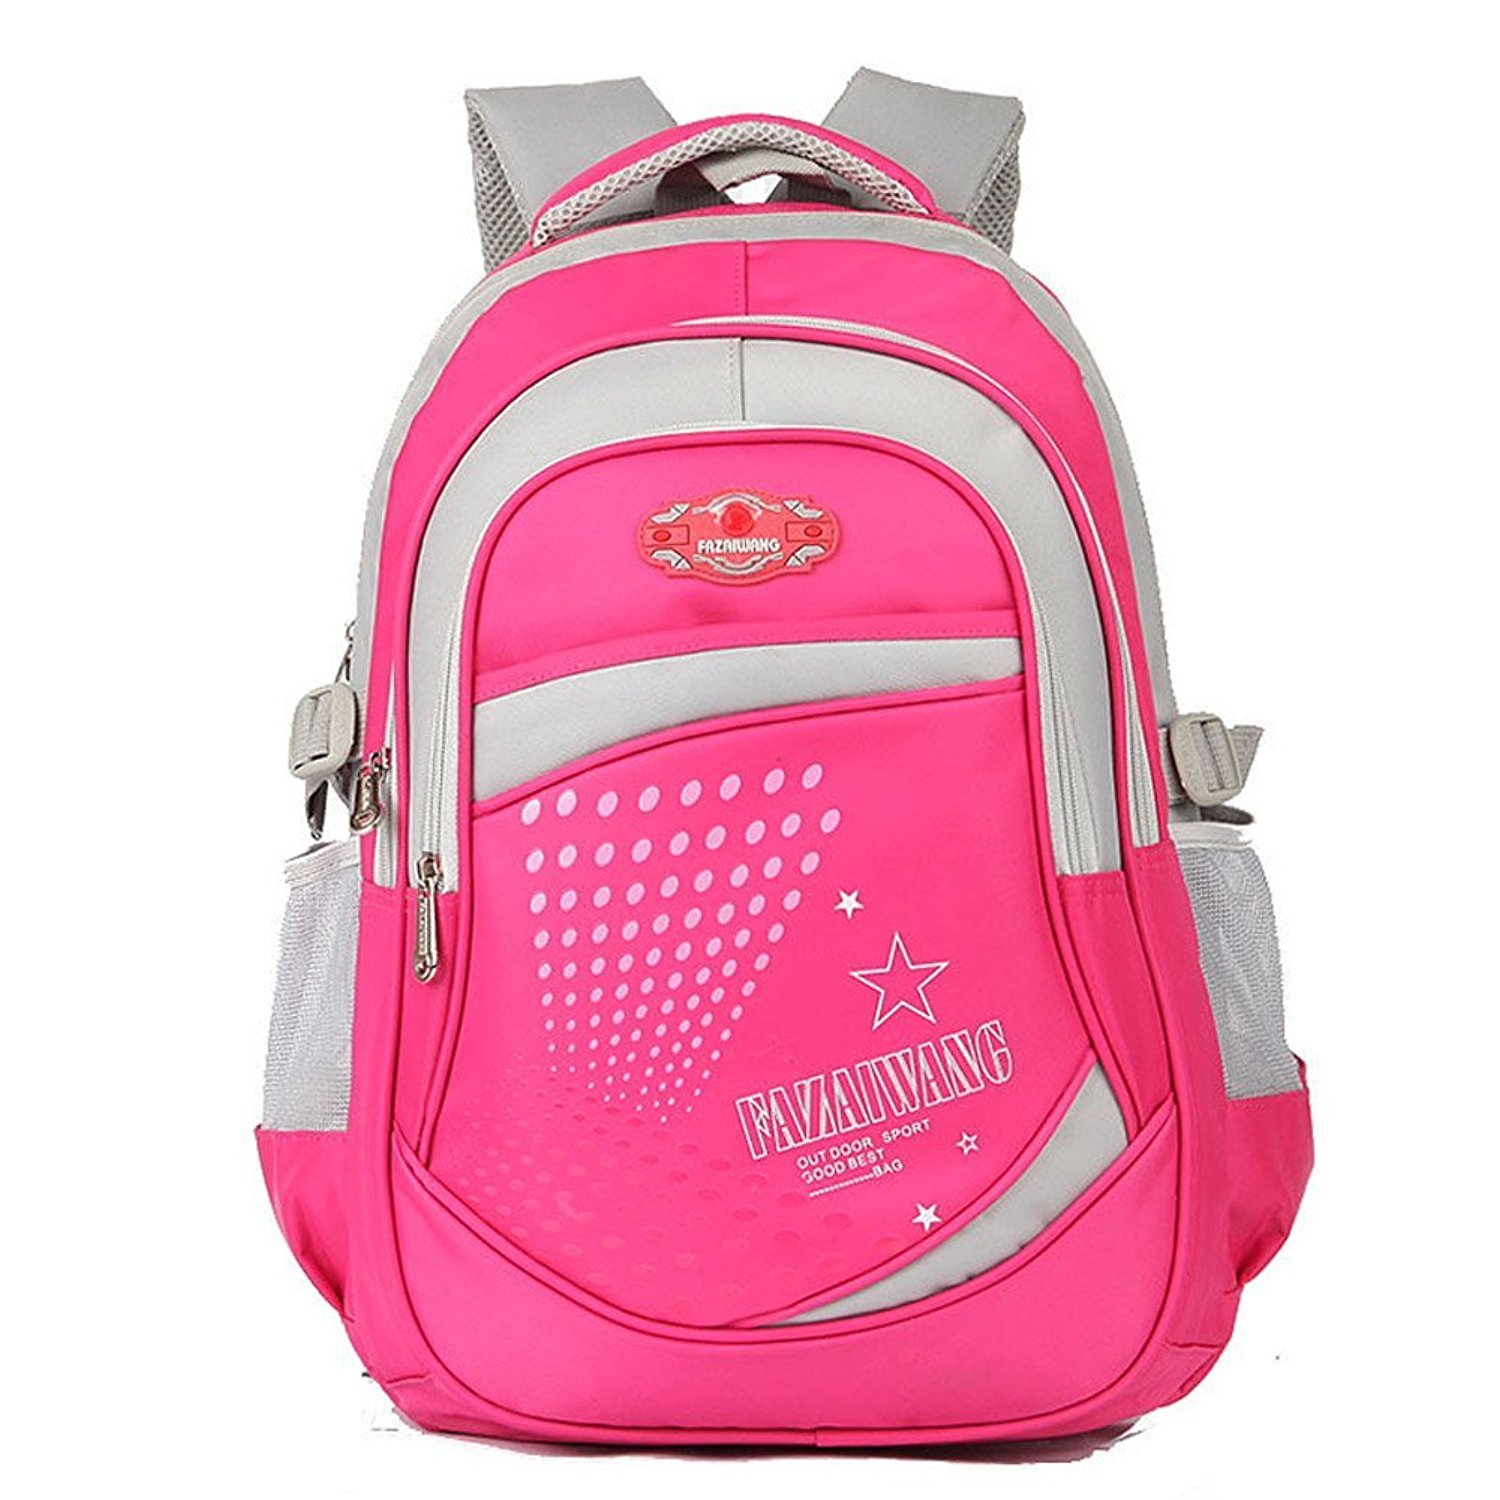 741a763090 Buy Dsinlare Bowknot Girls Bookbags for Kids Cute Backpacks for ...